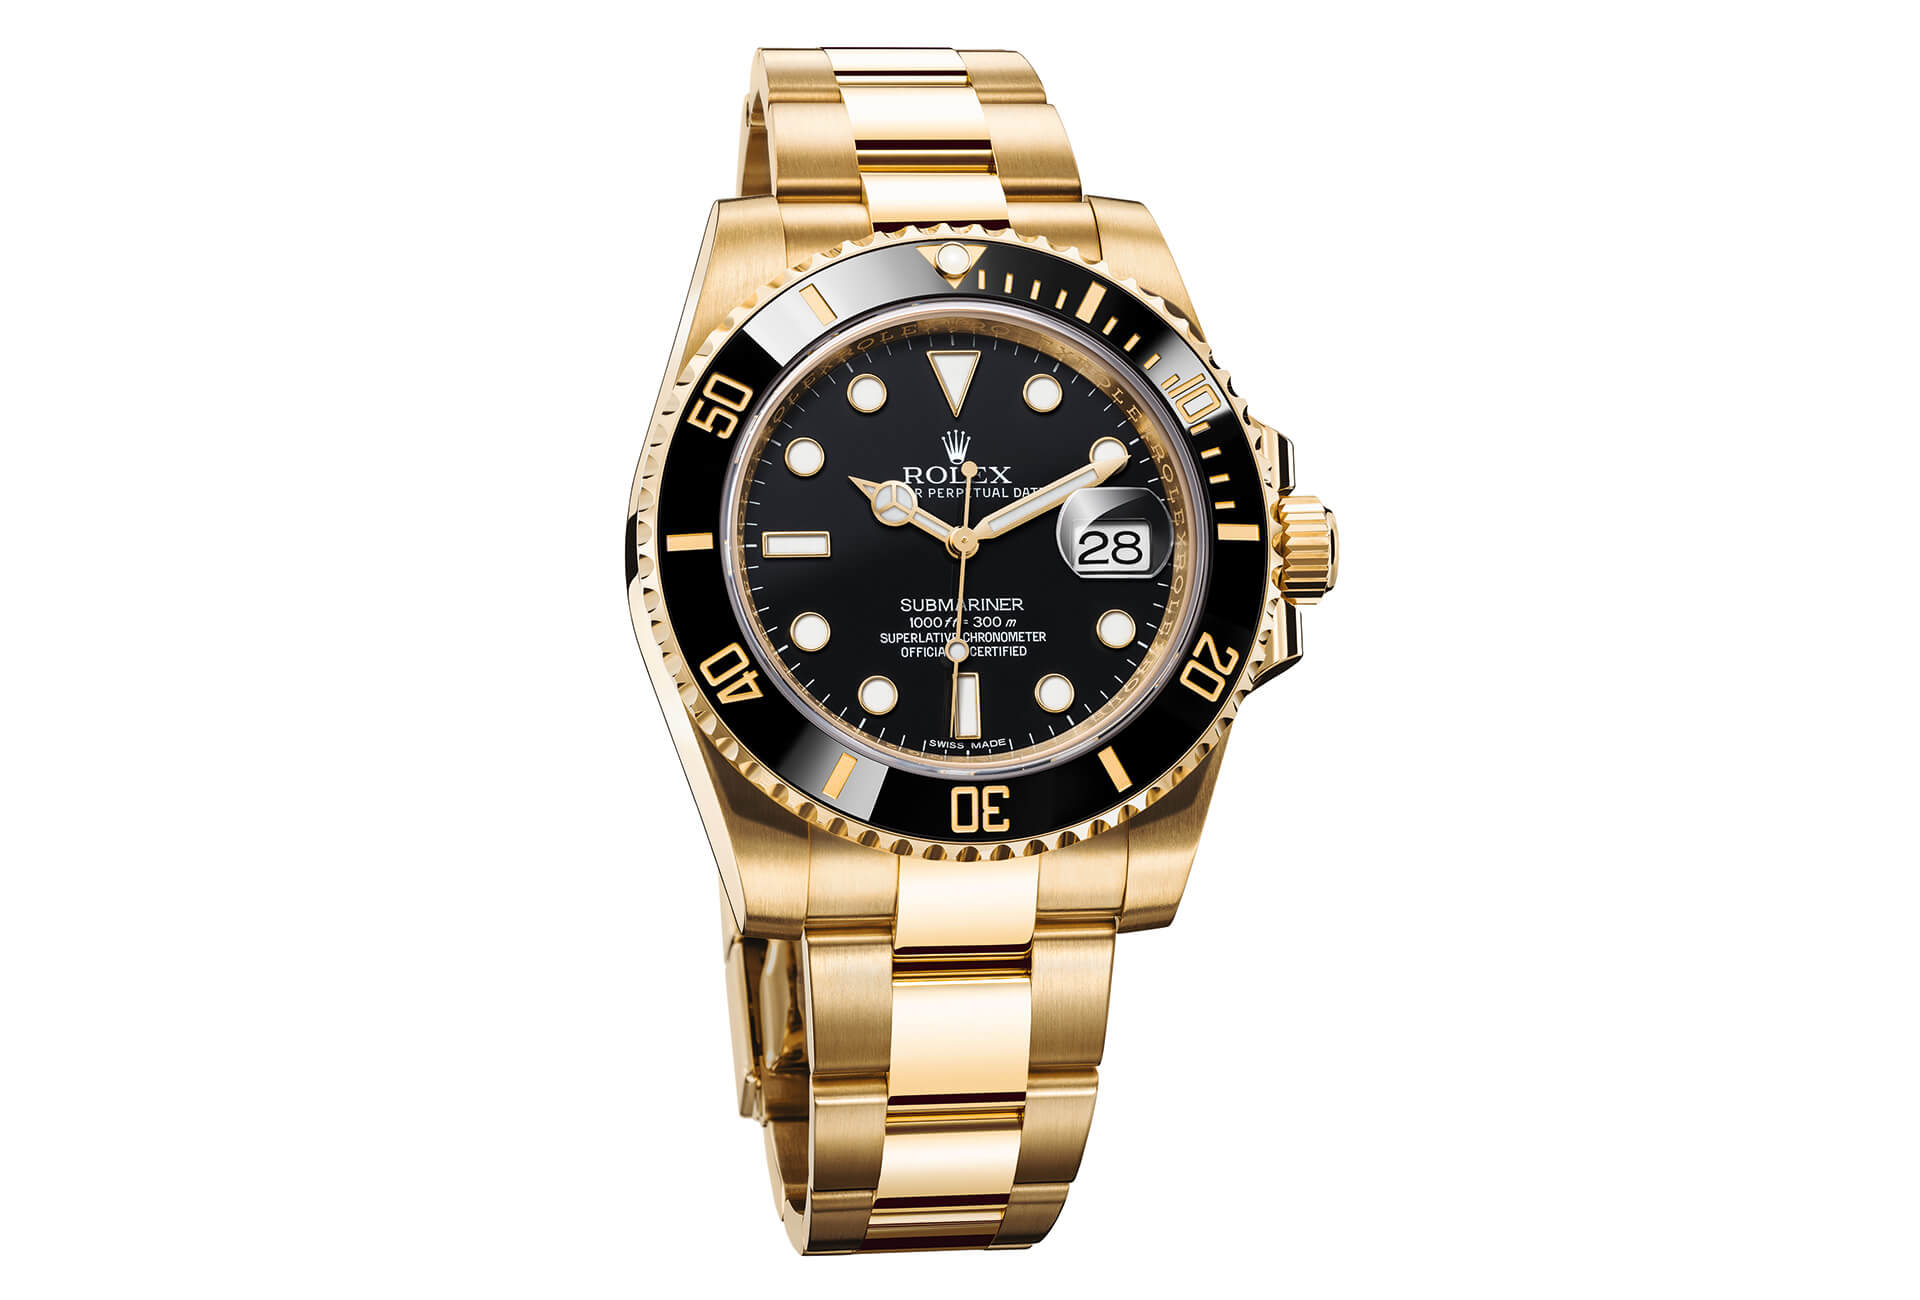 cff8e2e1de8 Rolex Oyster Submariner Date in 18k yellow gold with black bezel and dial